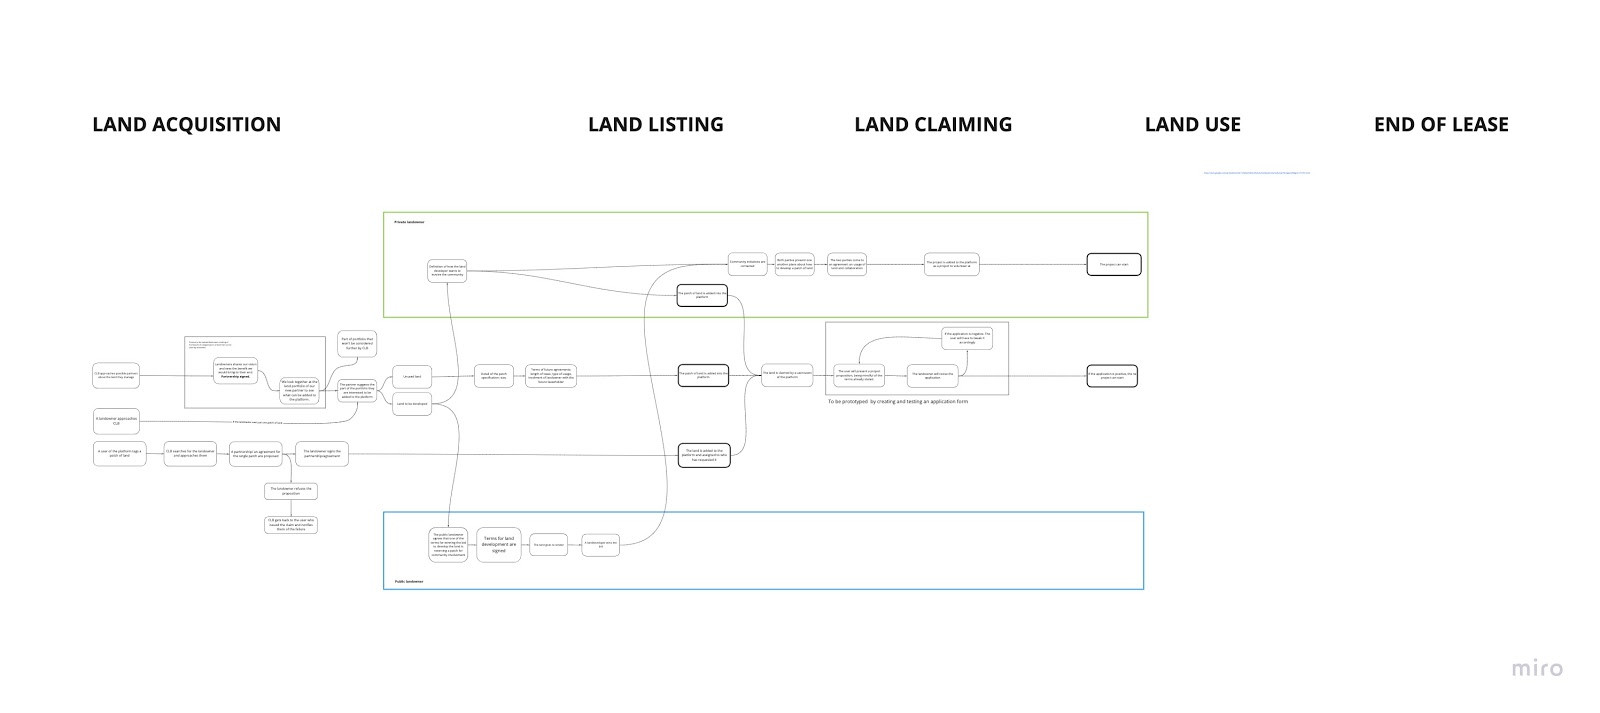 Land listing journey for both public and private land owners